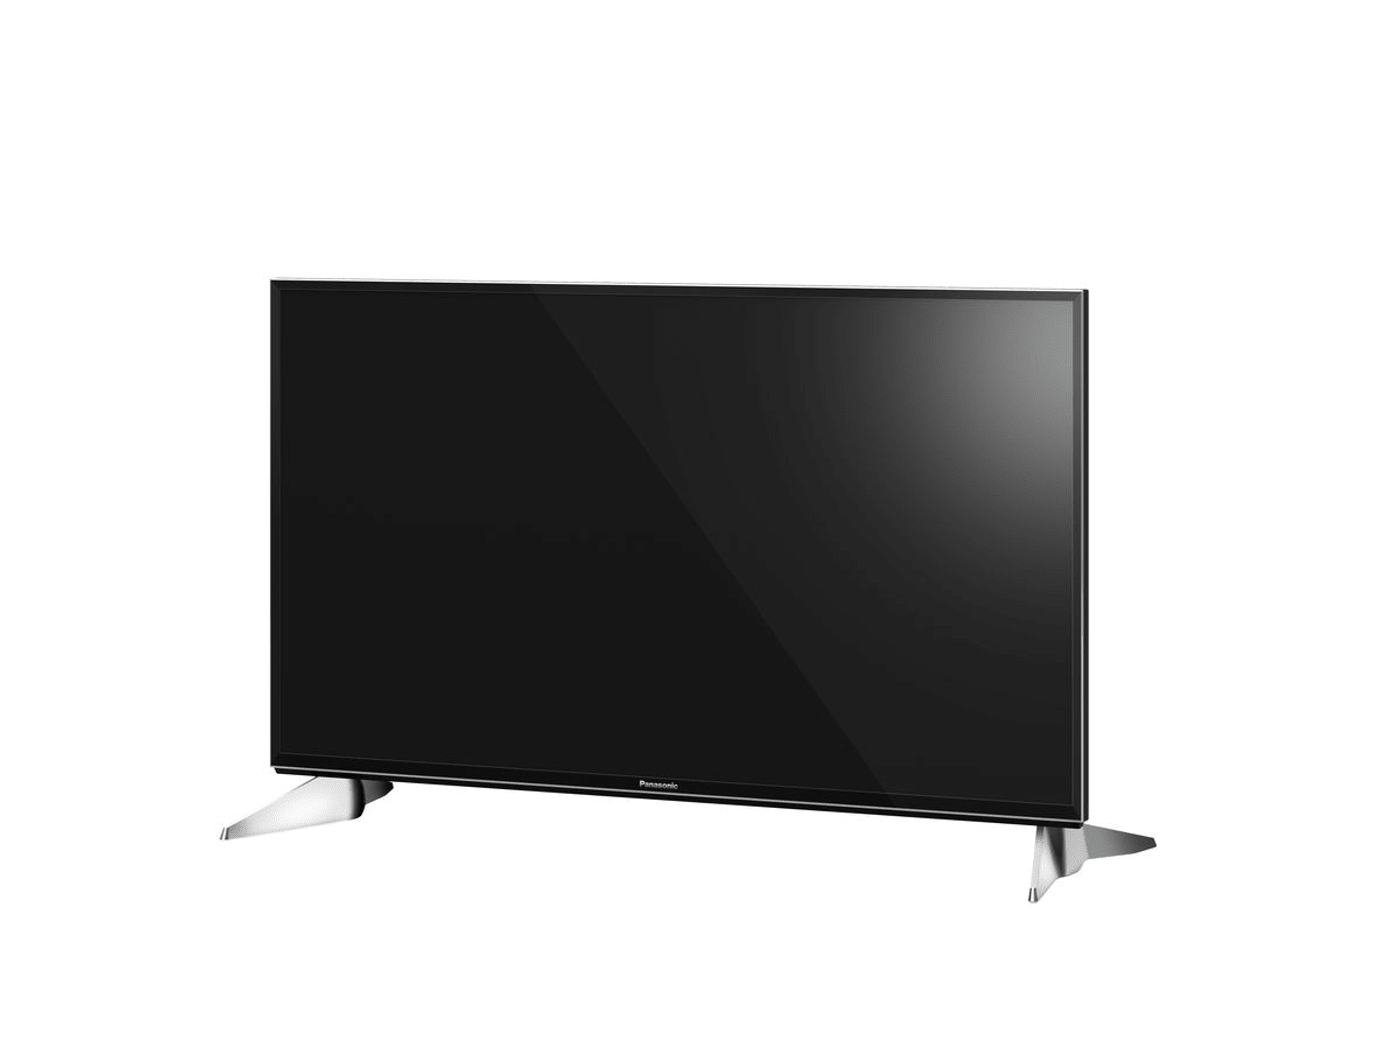 panasonic tx 65exw604 164 cm 4k fernseher migros. Black Bedroom Furniture Sets. Home Design Ideas